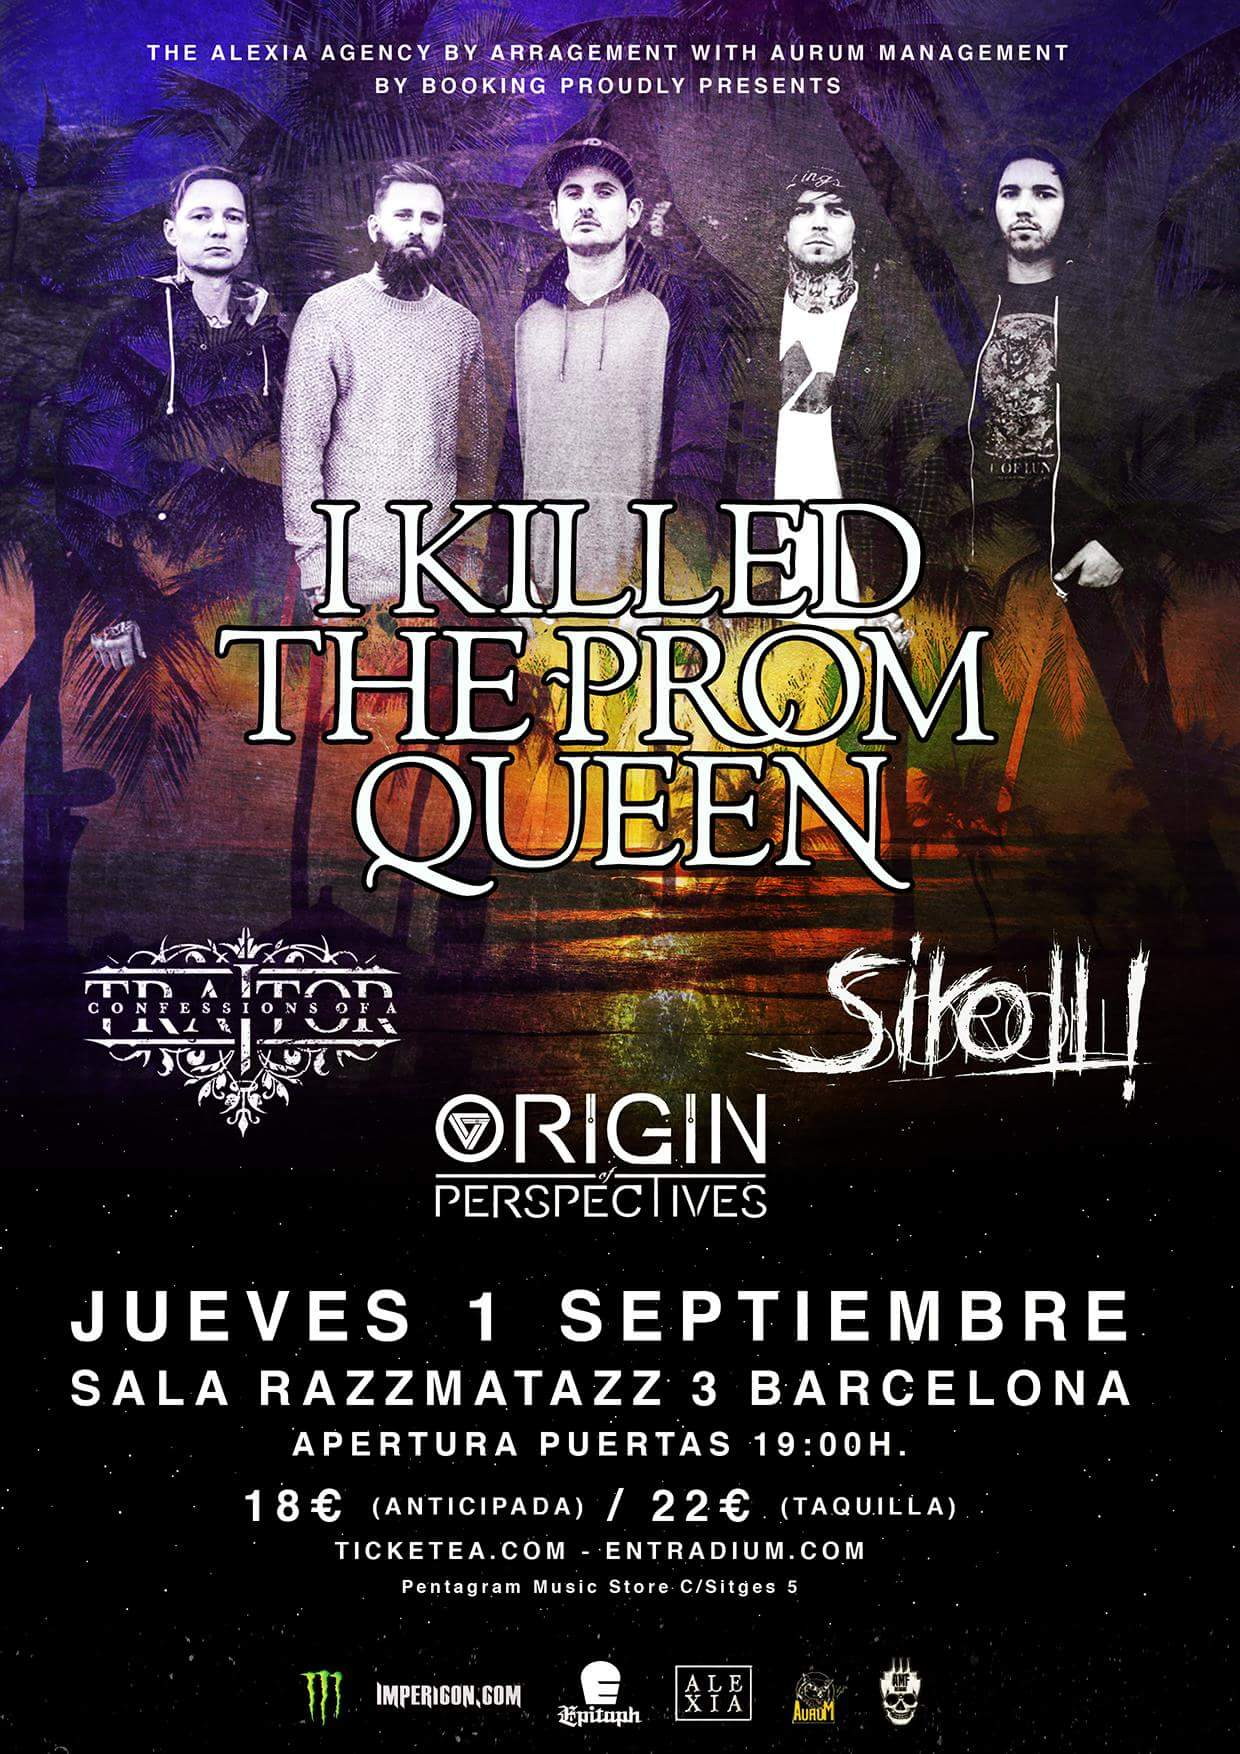 I Killed The Prom Queen + Confessions Of A Traitor + Siroll! + Origin Of Perspectives Razzmatazz 3 (Barcelona)